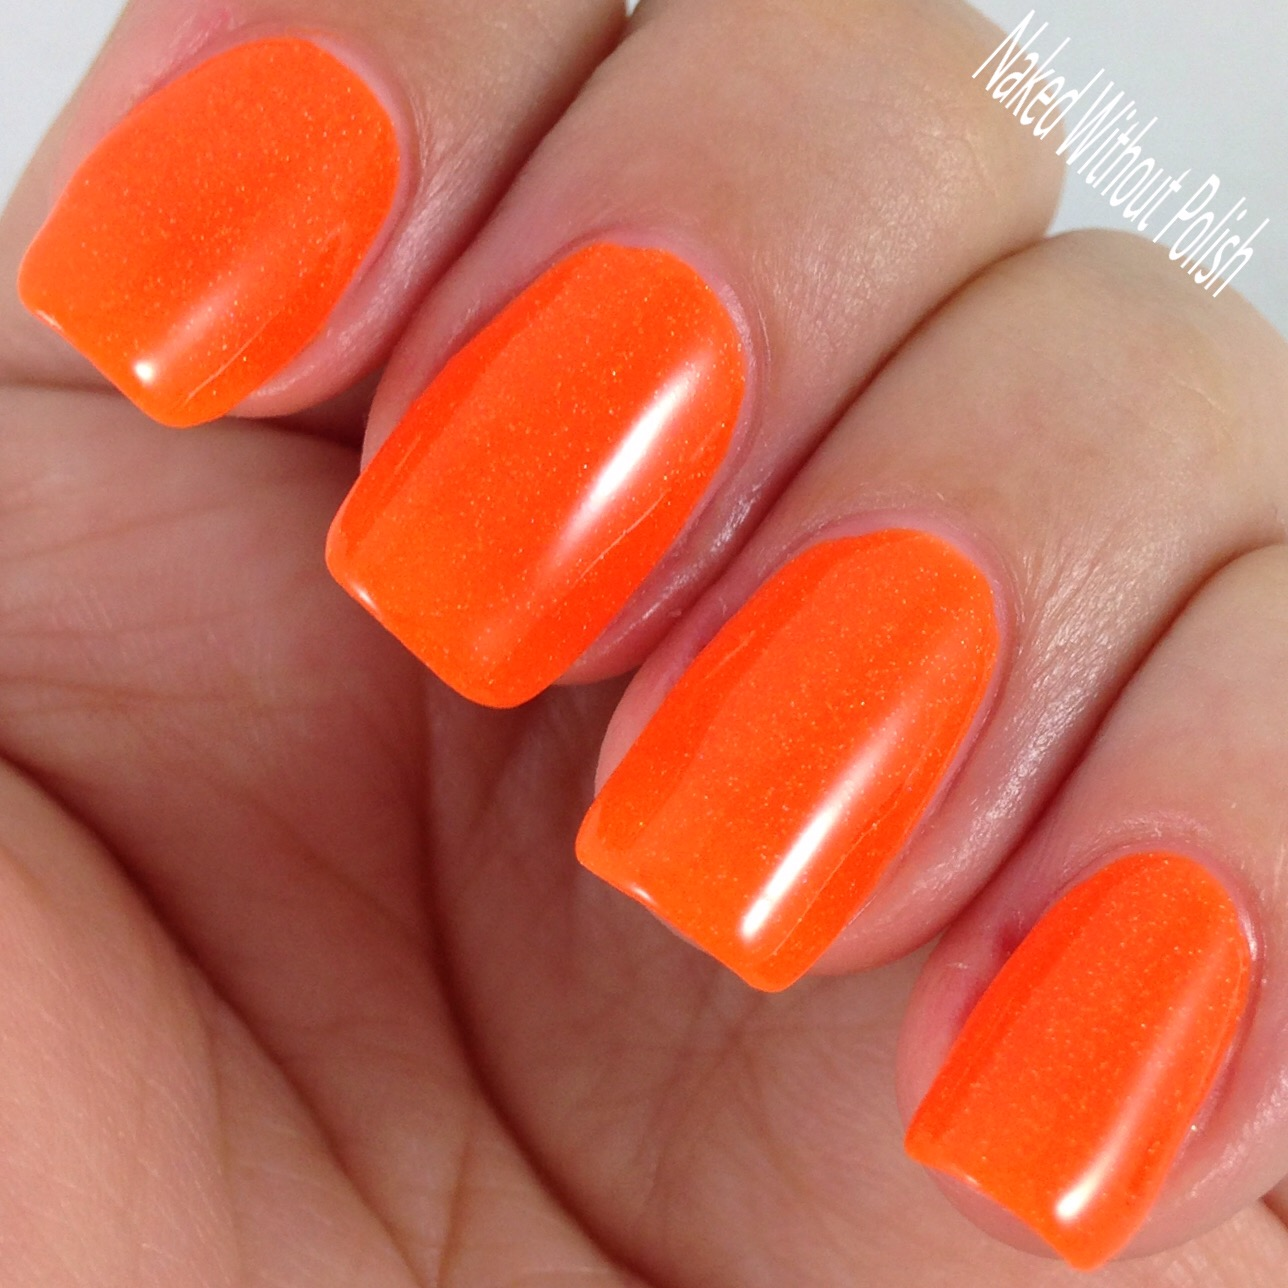 Leeshas-Lacquer-Girl-Look-How-Orange-You-Look-8